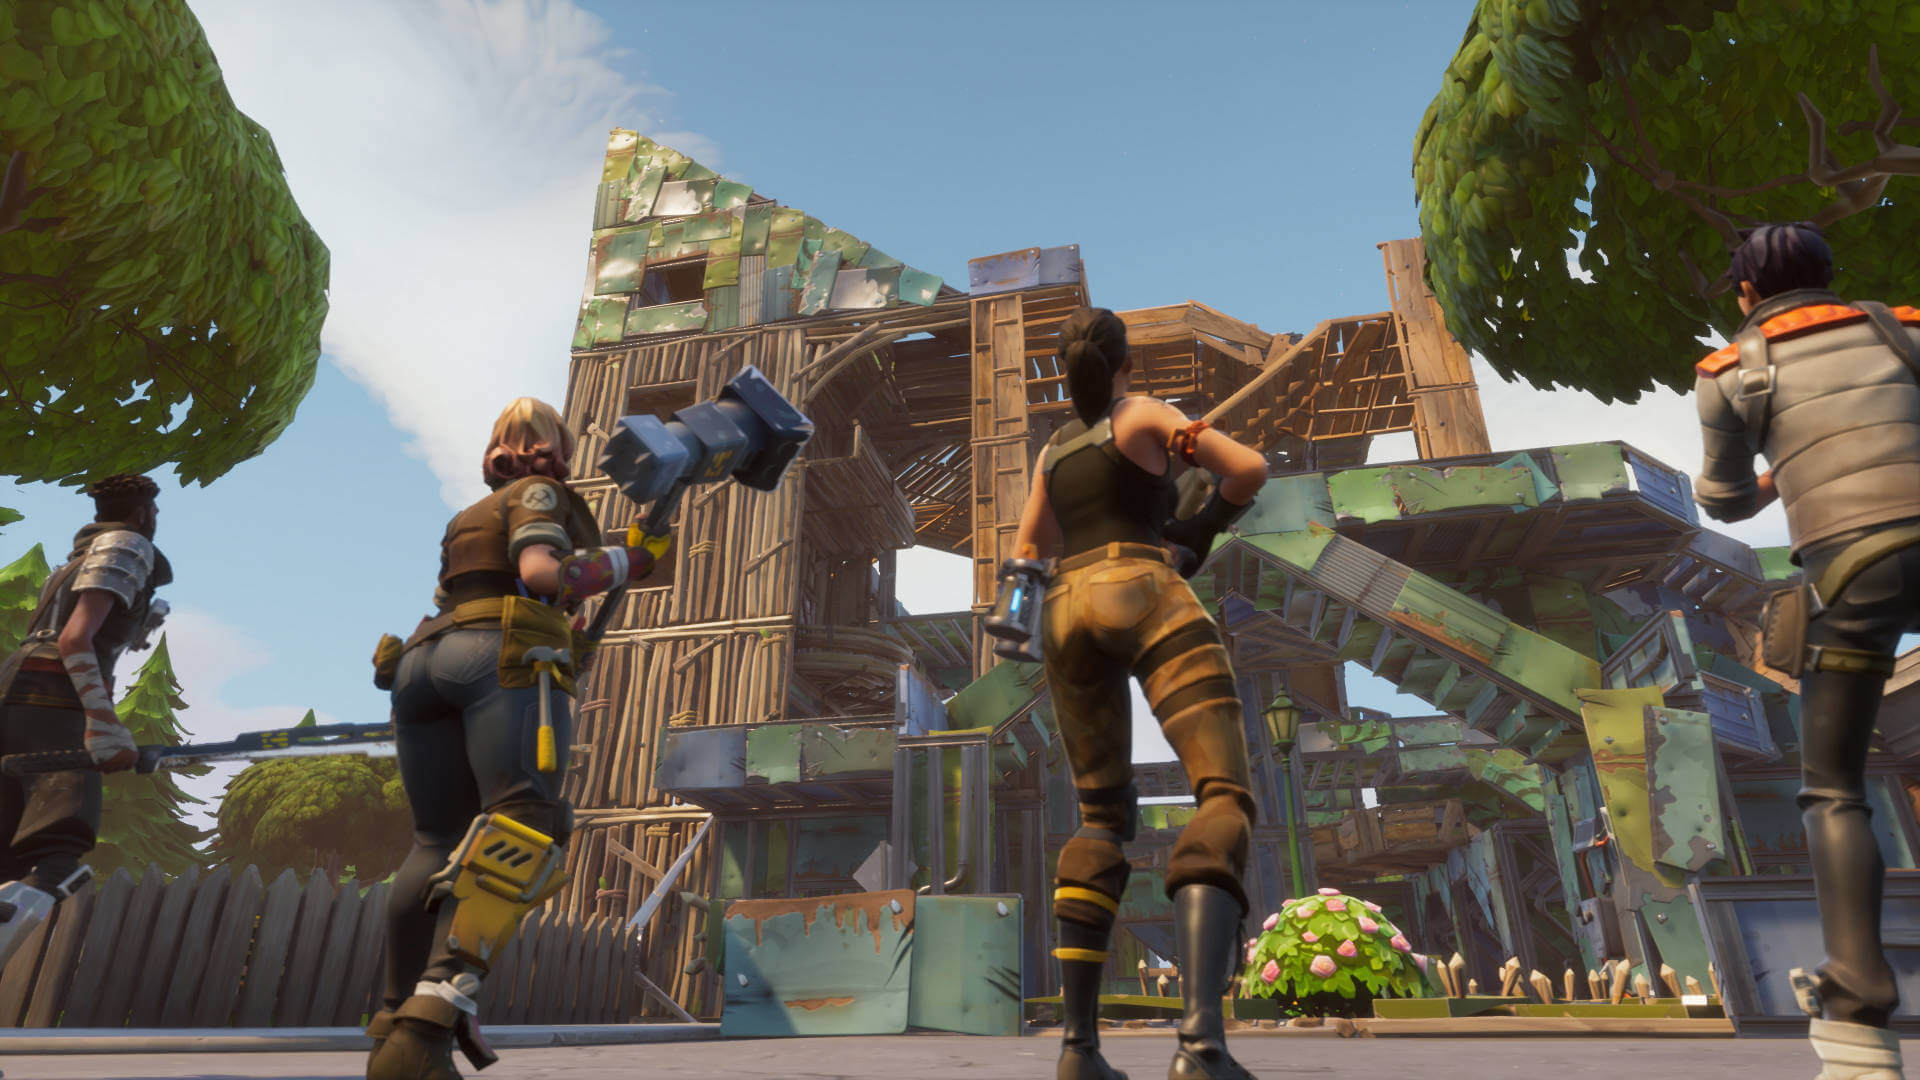 fortnite s battle royale mode has proven to be quite popular attracting more than 10 million players in less than two weeks obviously the battle royale - best monitor settings for fortnite asus